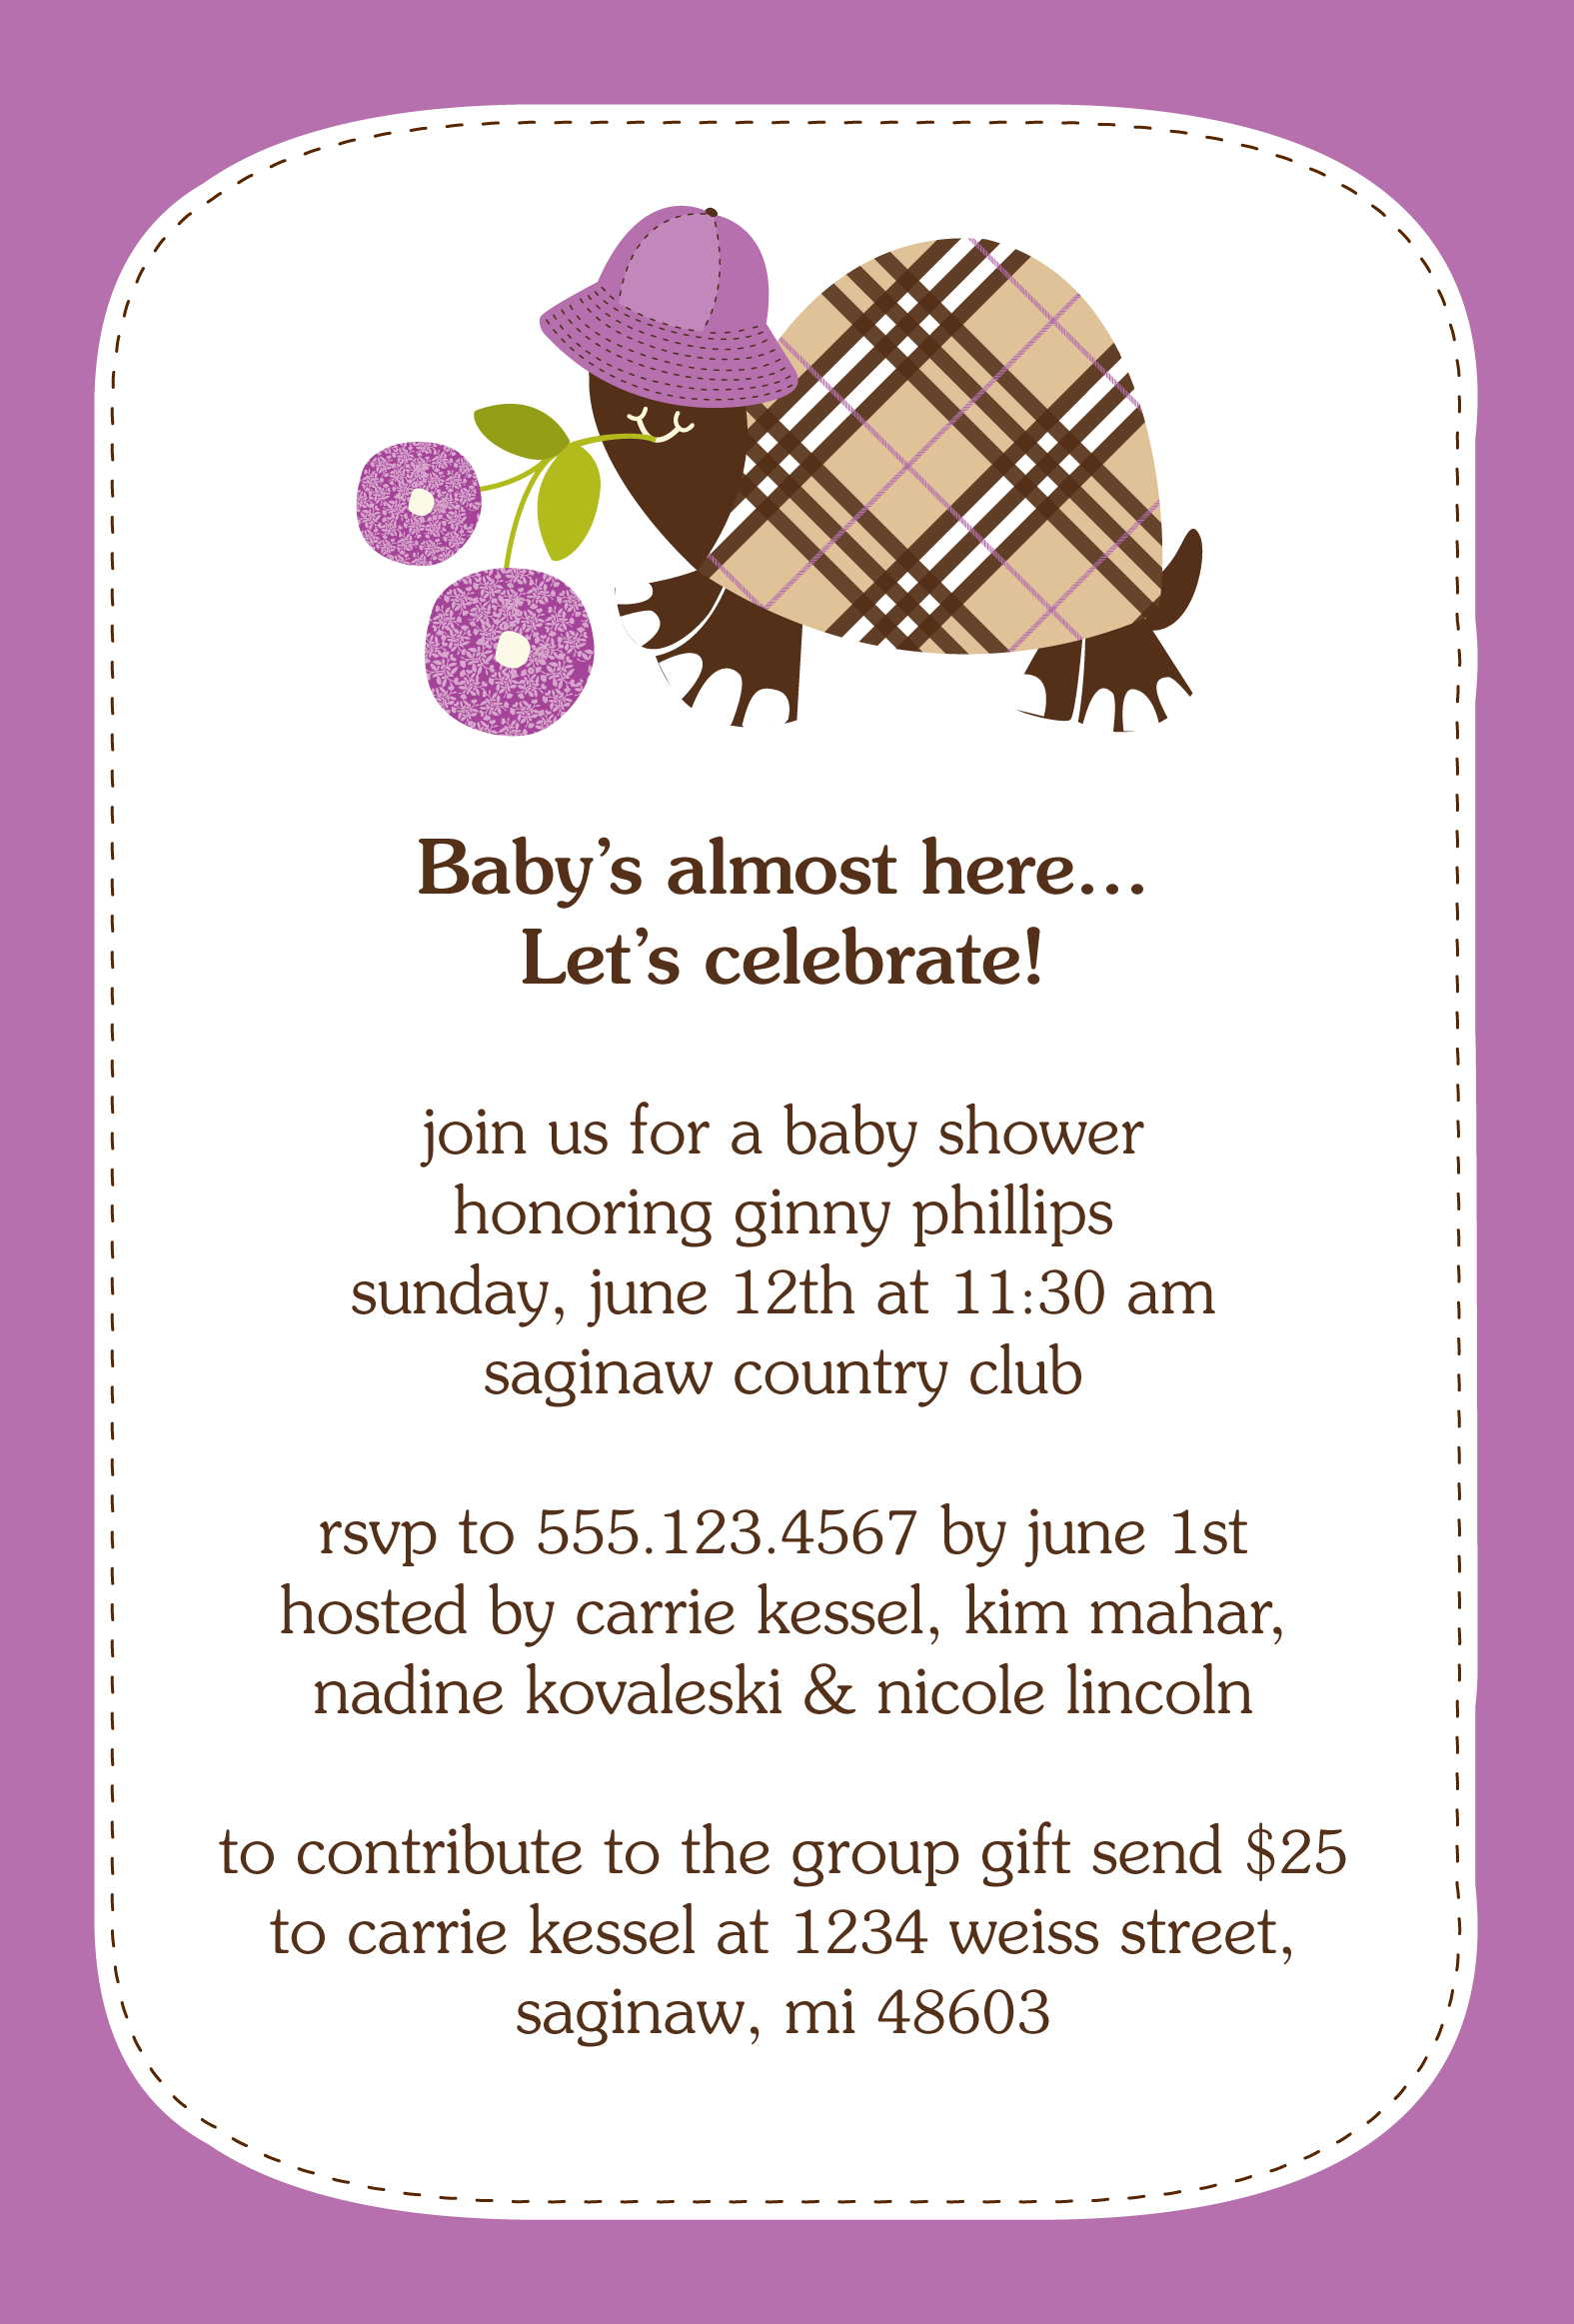 Full Size of Baby Shower:delightful Baby Shower Invitation Wording Picture Designs Recuerdos De Baby Shower Baby Favors Baby Shower Snapchat Filter Baby Shower Adalah